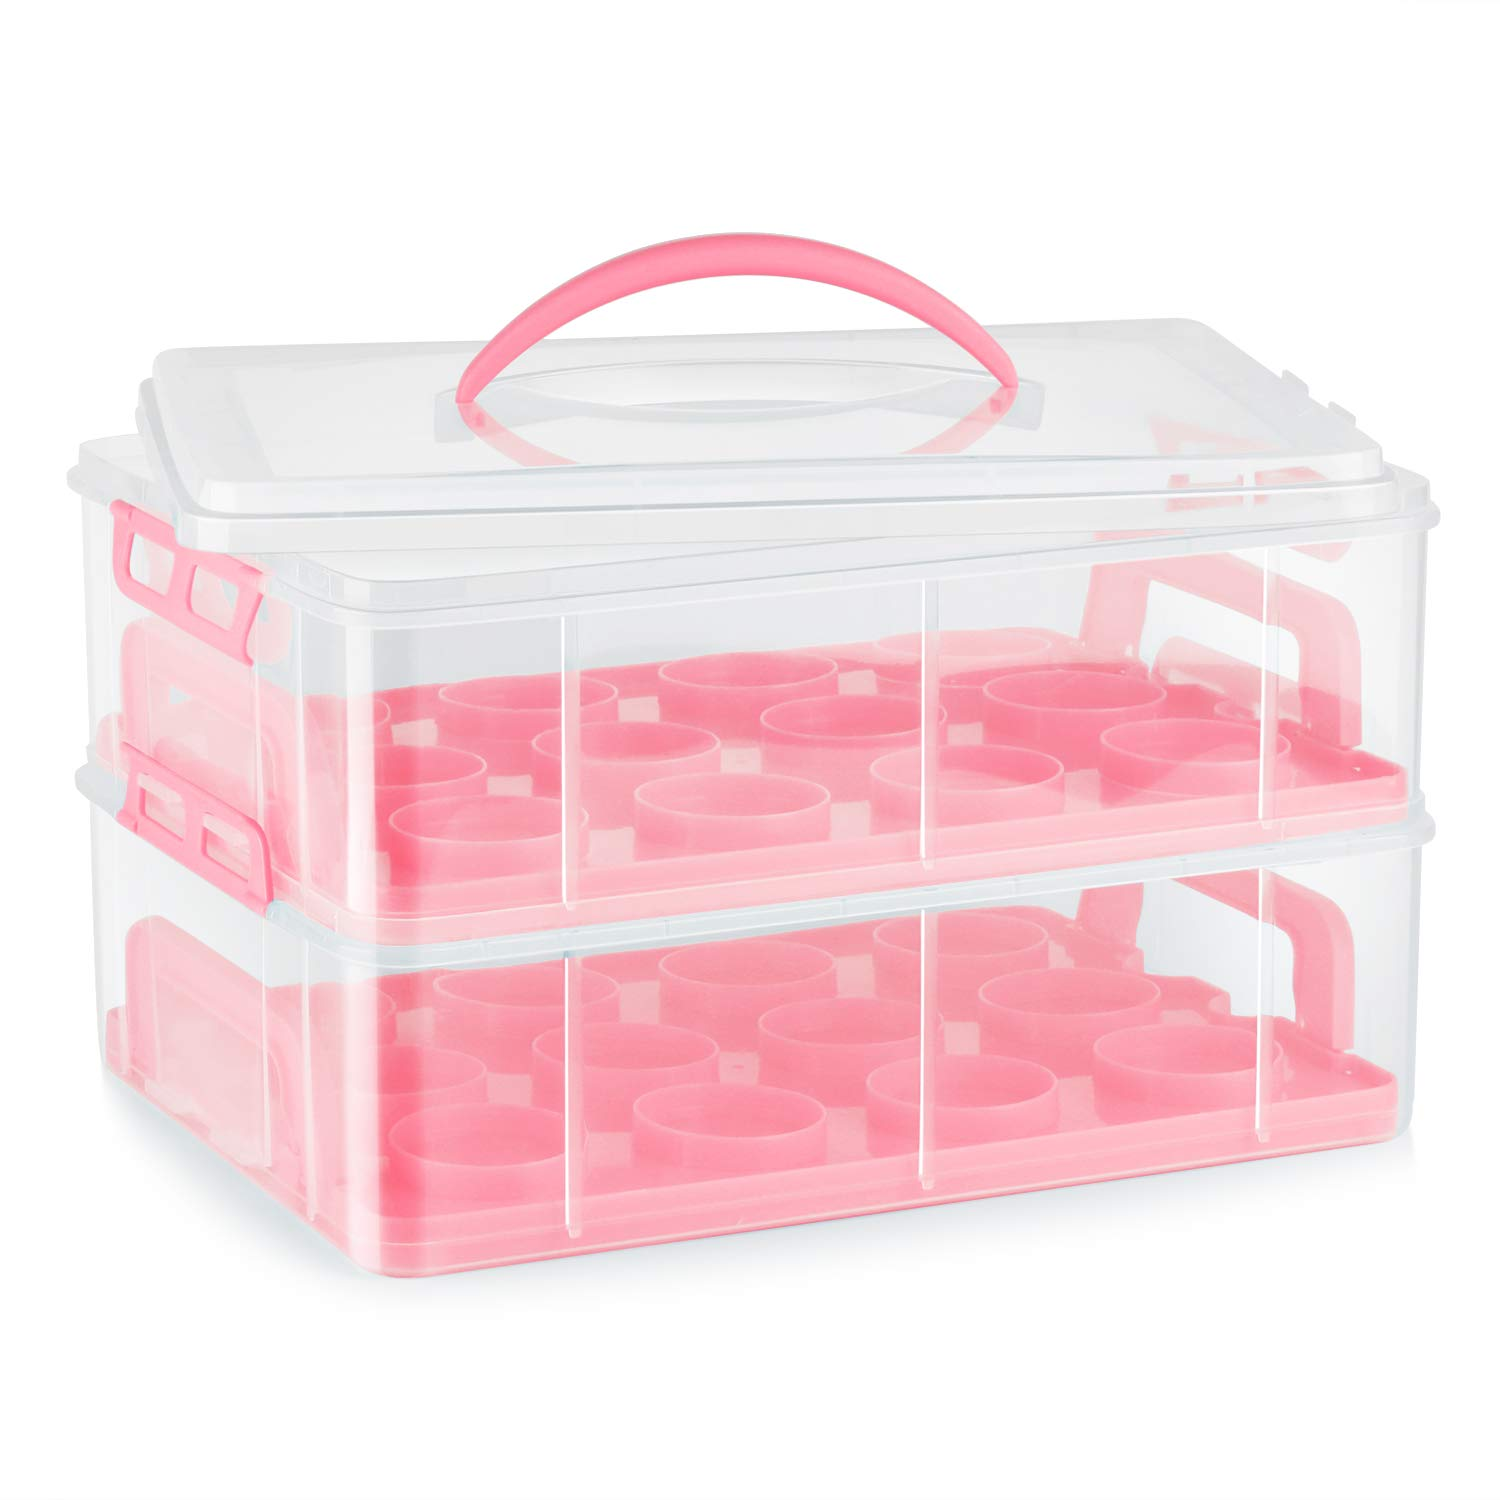 Flexzion Cupcake Carrier Holder Container Box (24 Slot, 2 Tier) - 24 Cupcakes Slot or 2 Large Cakes Pastry Clear Plastic Storage Basket Taker Courier with 2 Tier Stackable Layer Insert (Pink) by Flexzion